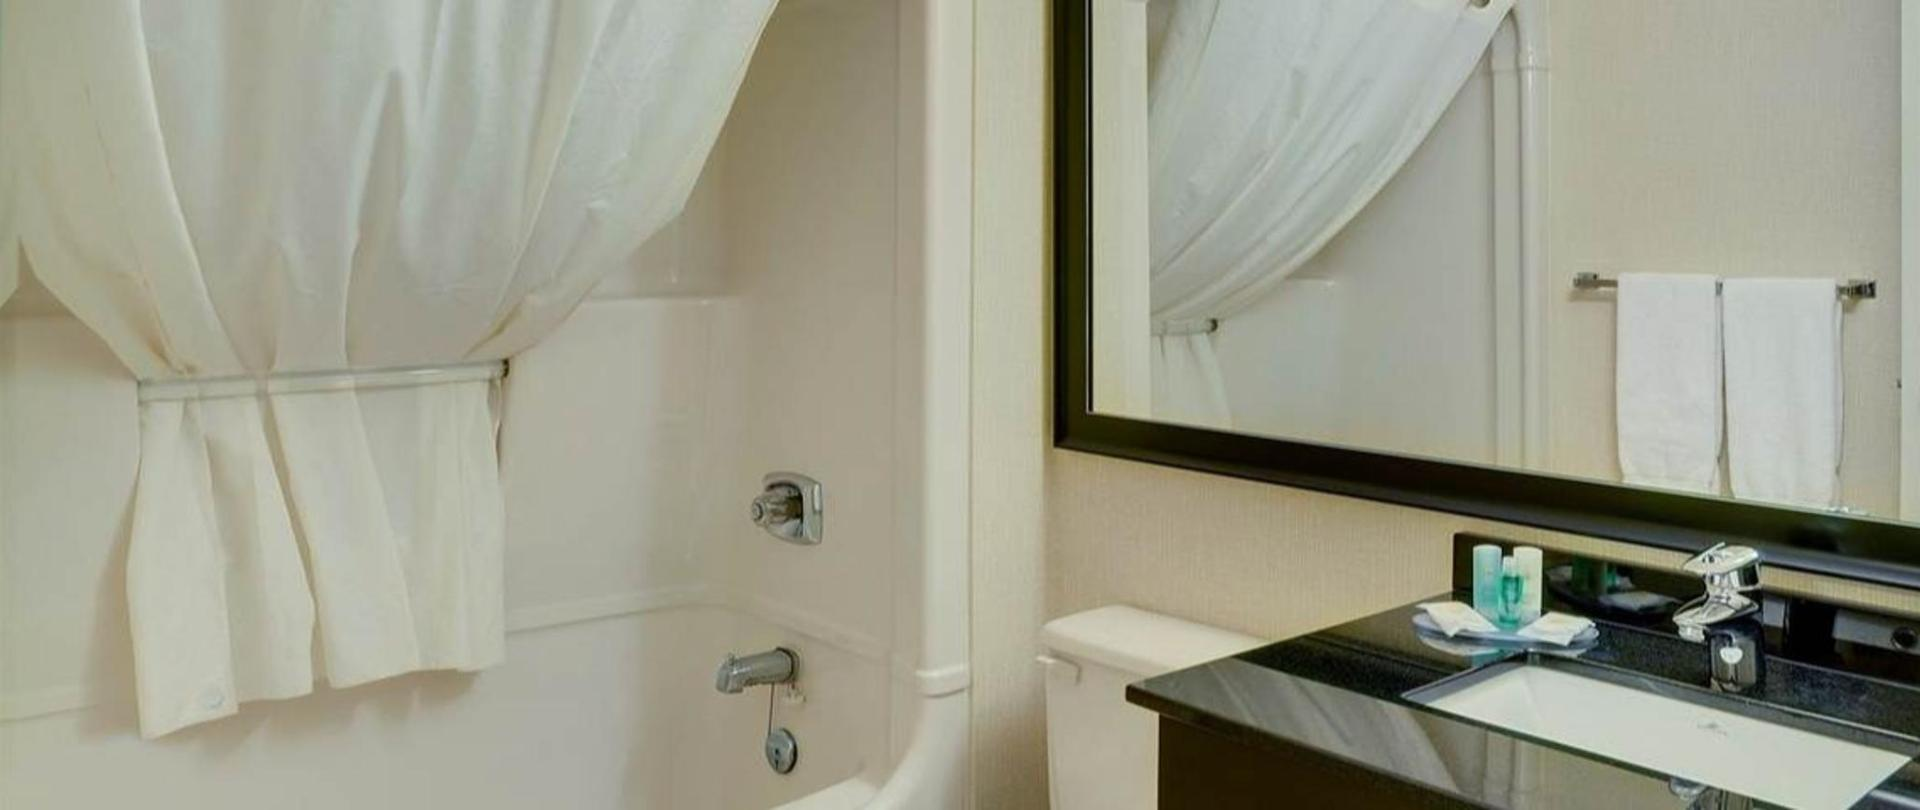 guest-bathroom-with-curved-shower-rod-new-tile-and-vanity.jpg.1140x481_default.jpg